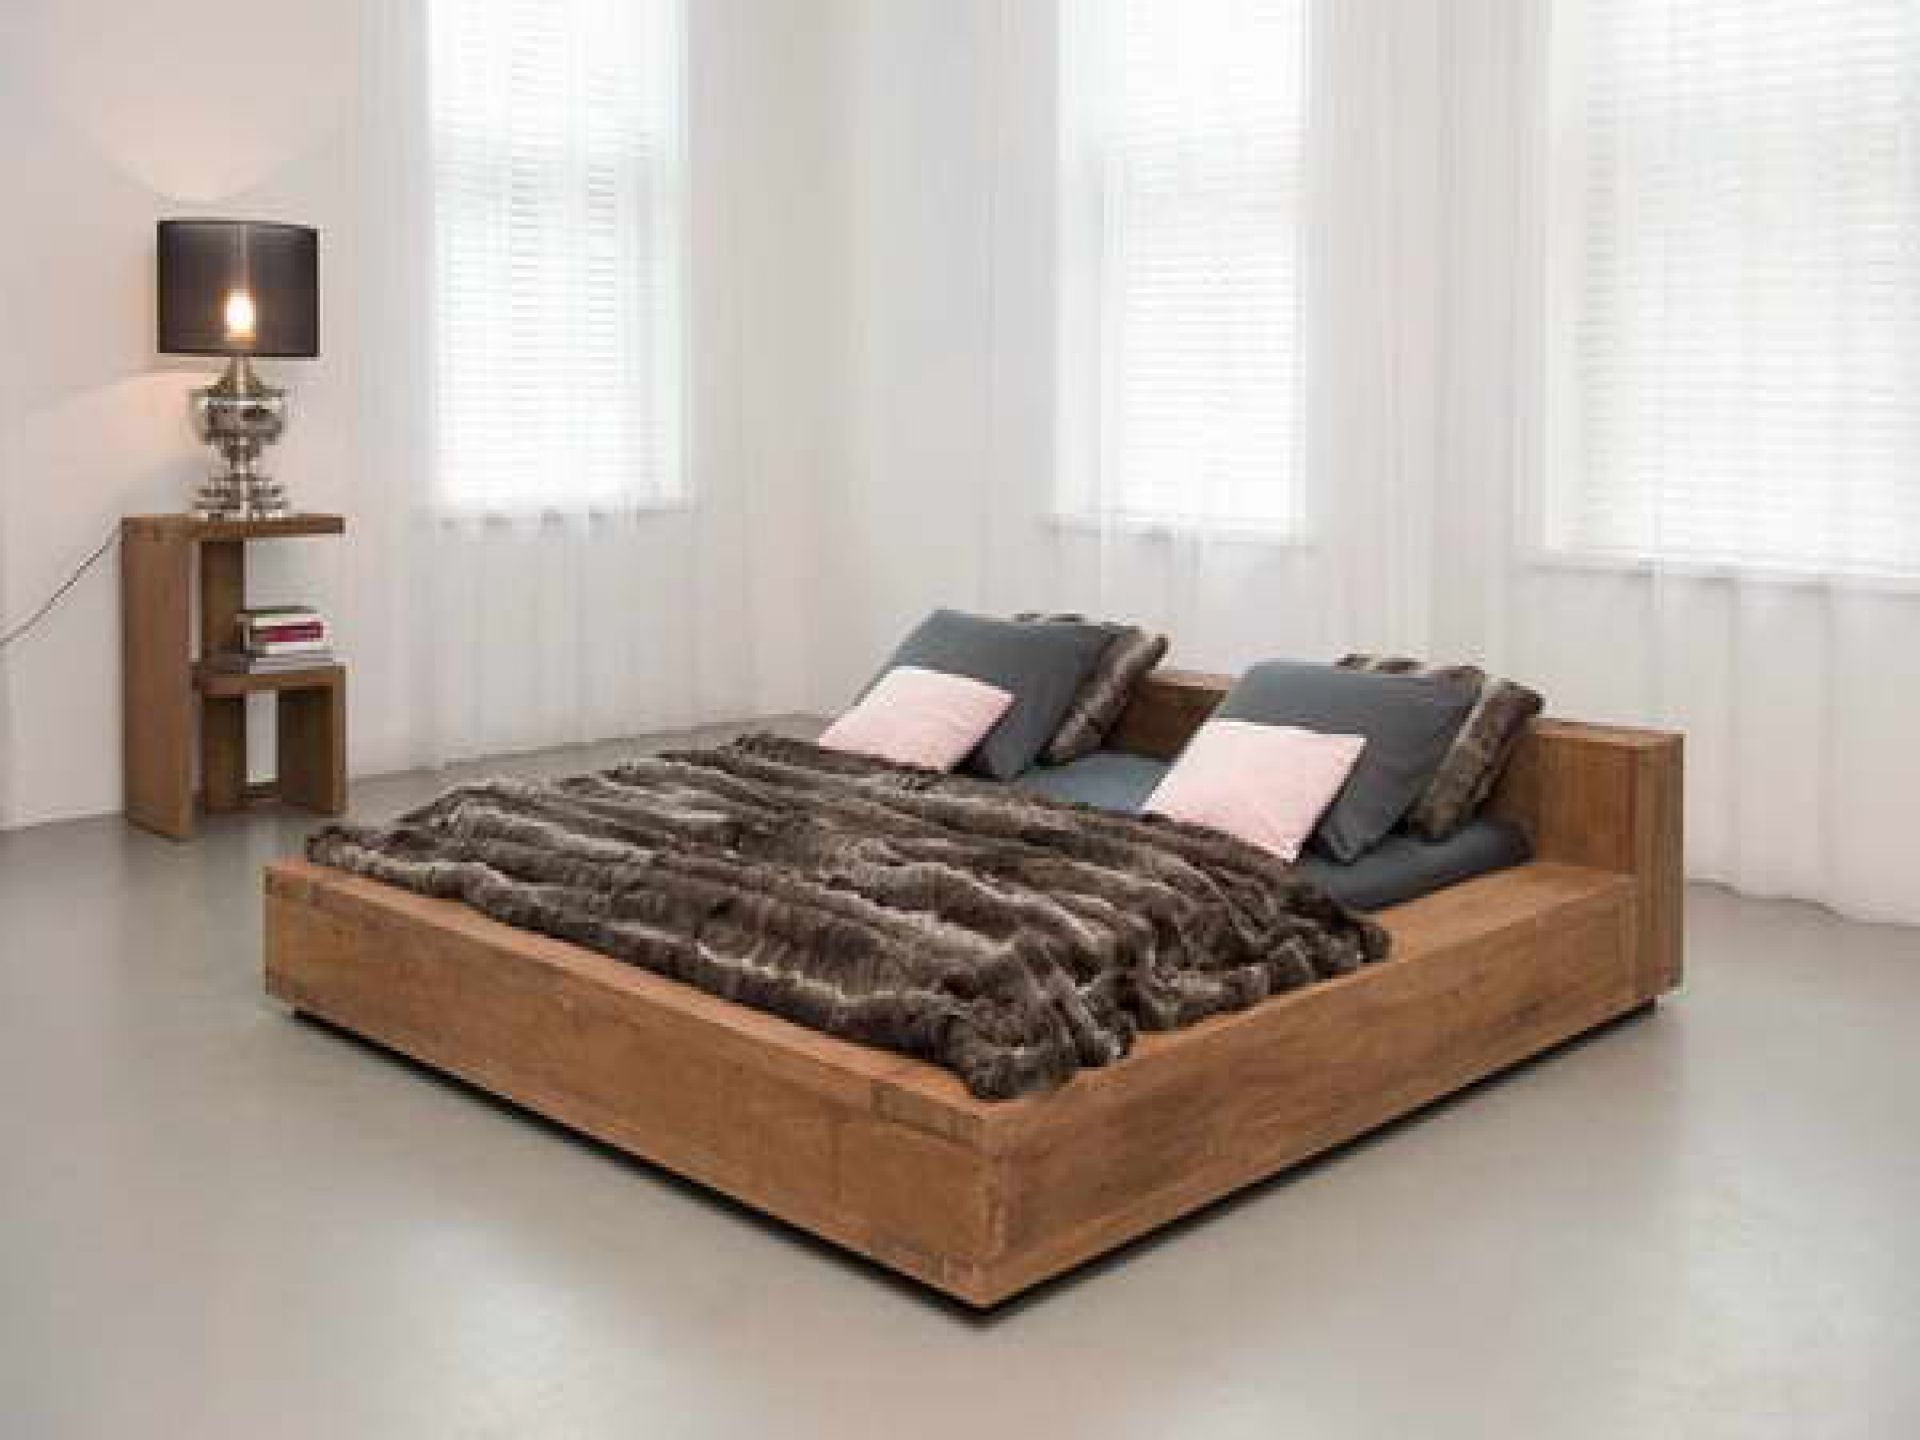 Bedroom Furniture Reclaimed Wood bedroom-furniture-fearful-low-profile-platform-reclaimed-wood-bed